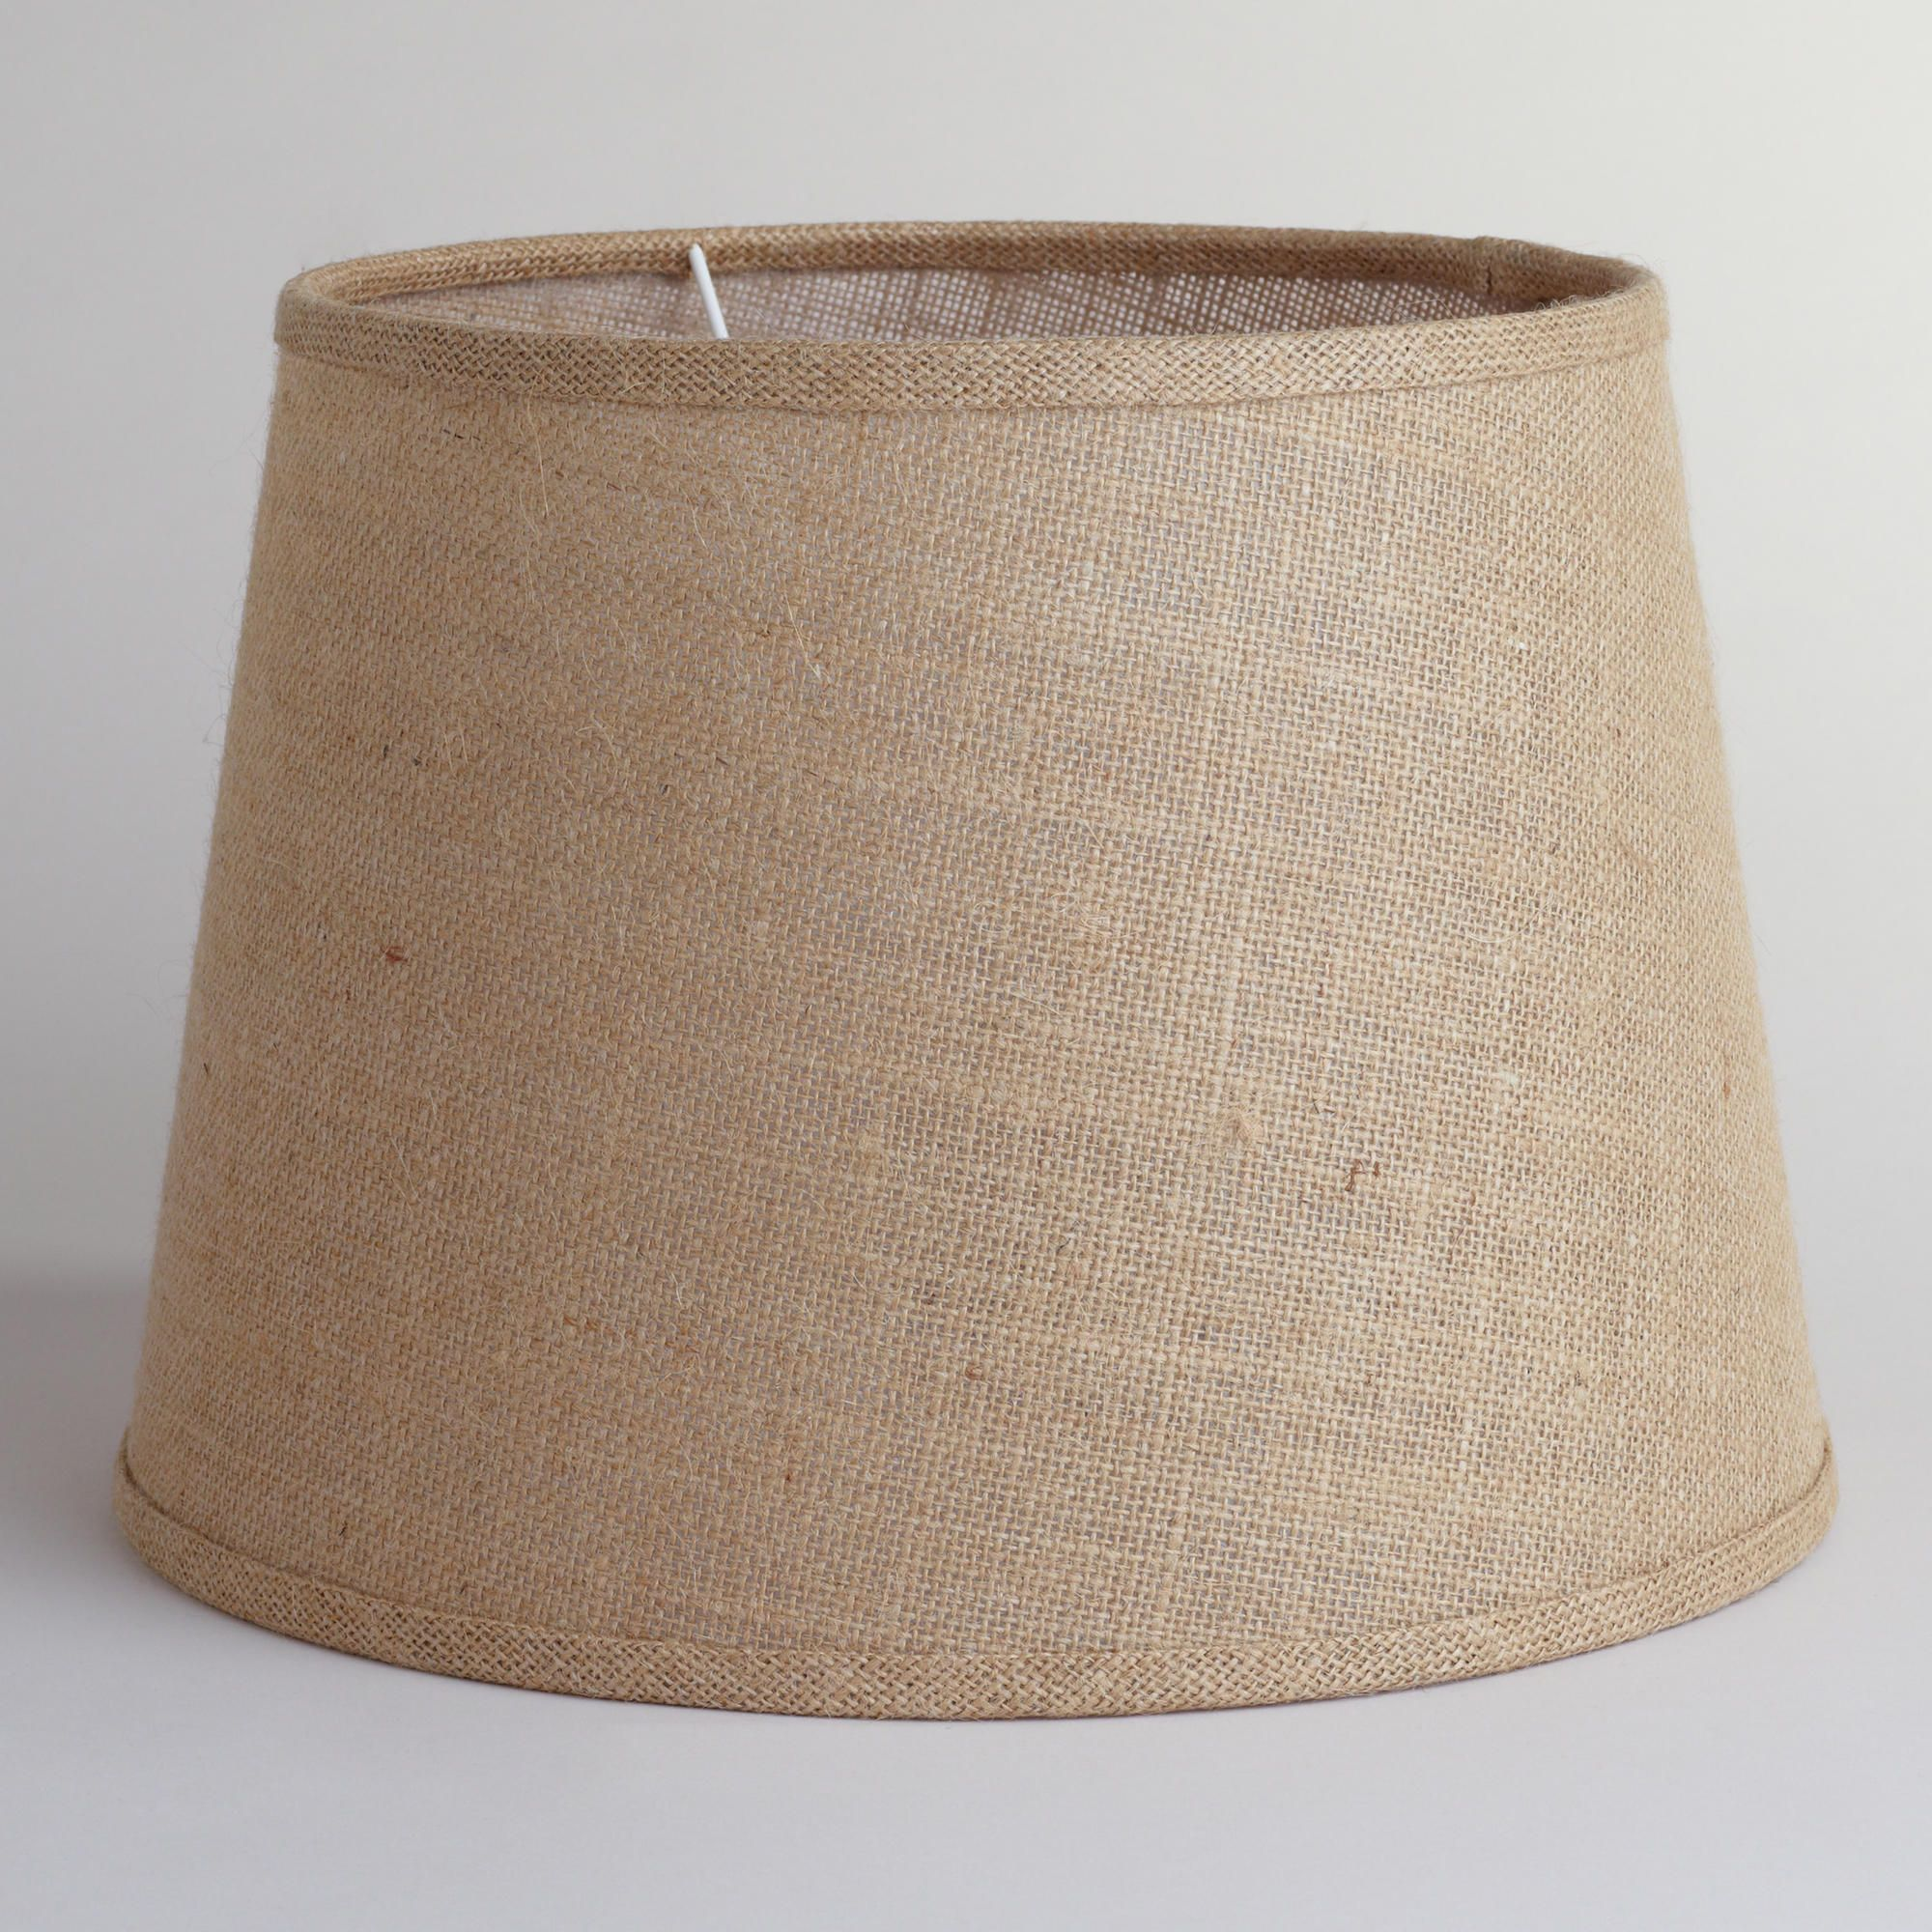 World Market Lamp Shades Natural Burlap Table Lamp Shade  World Market  Things For The Home